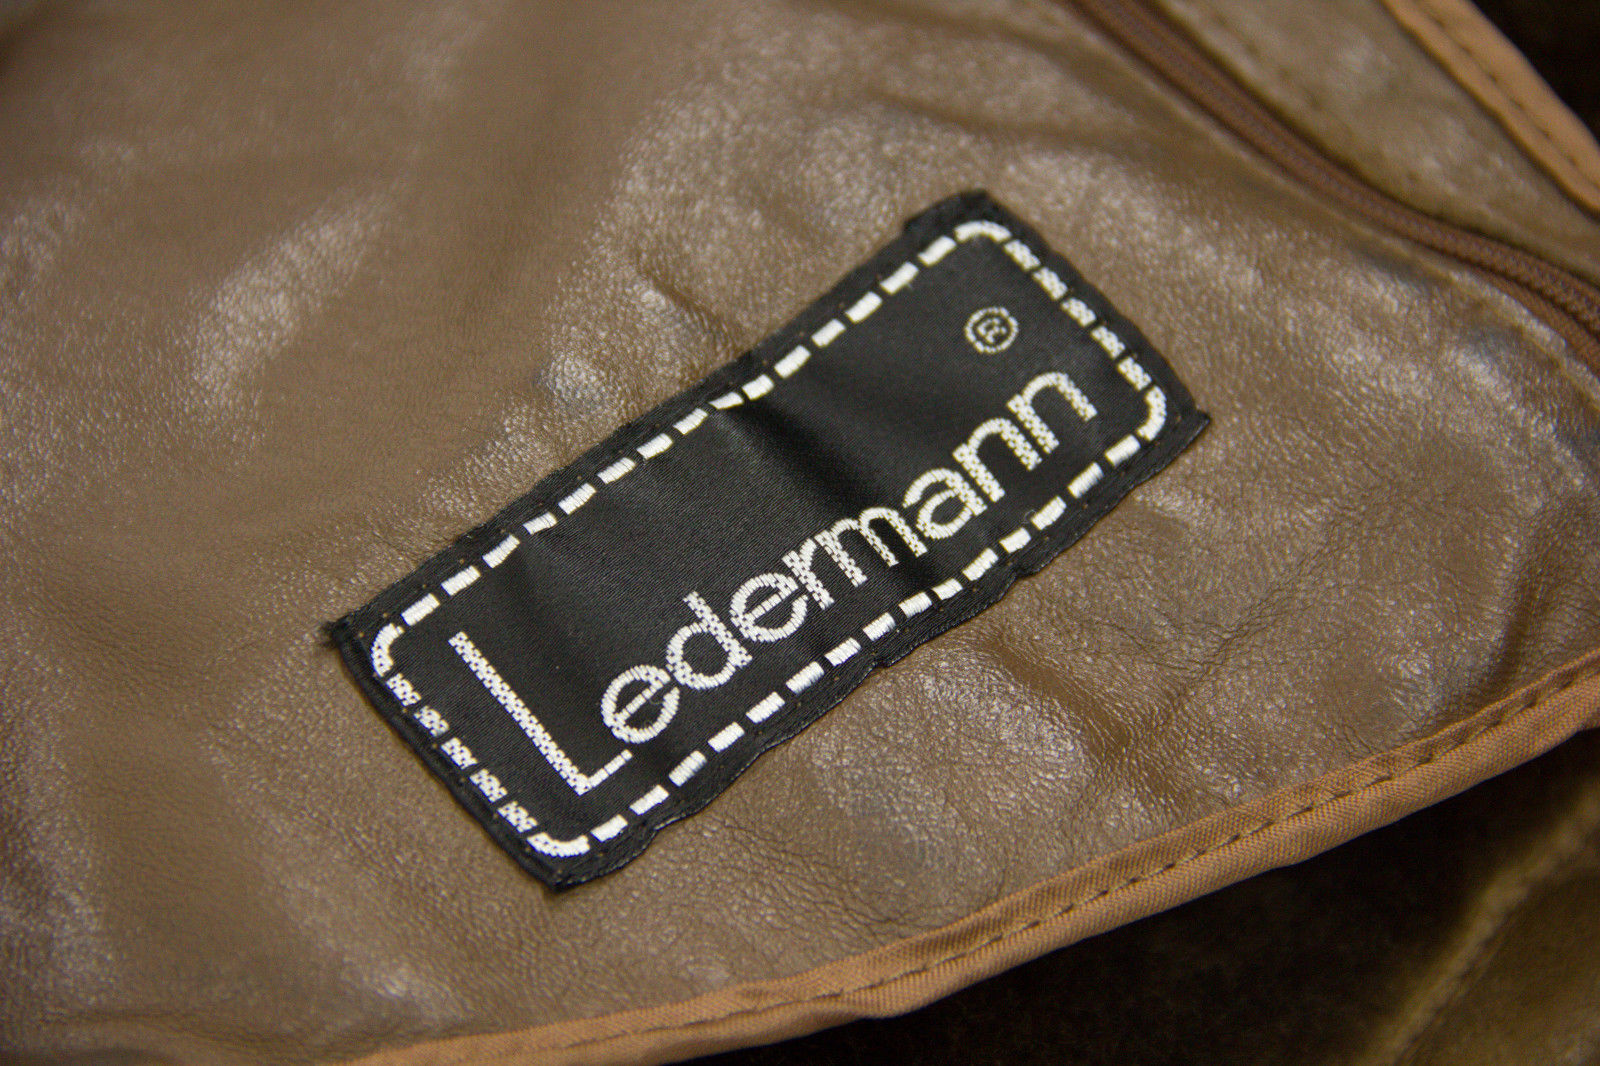 LEDERMANN Men's Brown Shearling Coat Jacket, Size EU50, US40 - secondfirst